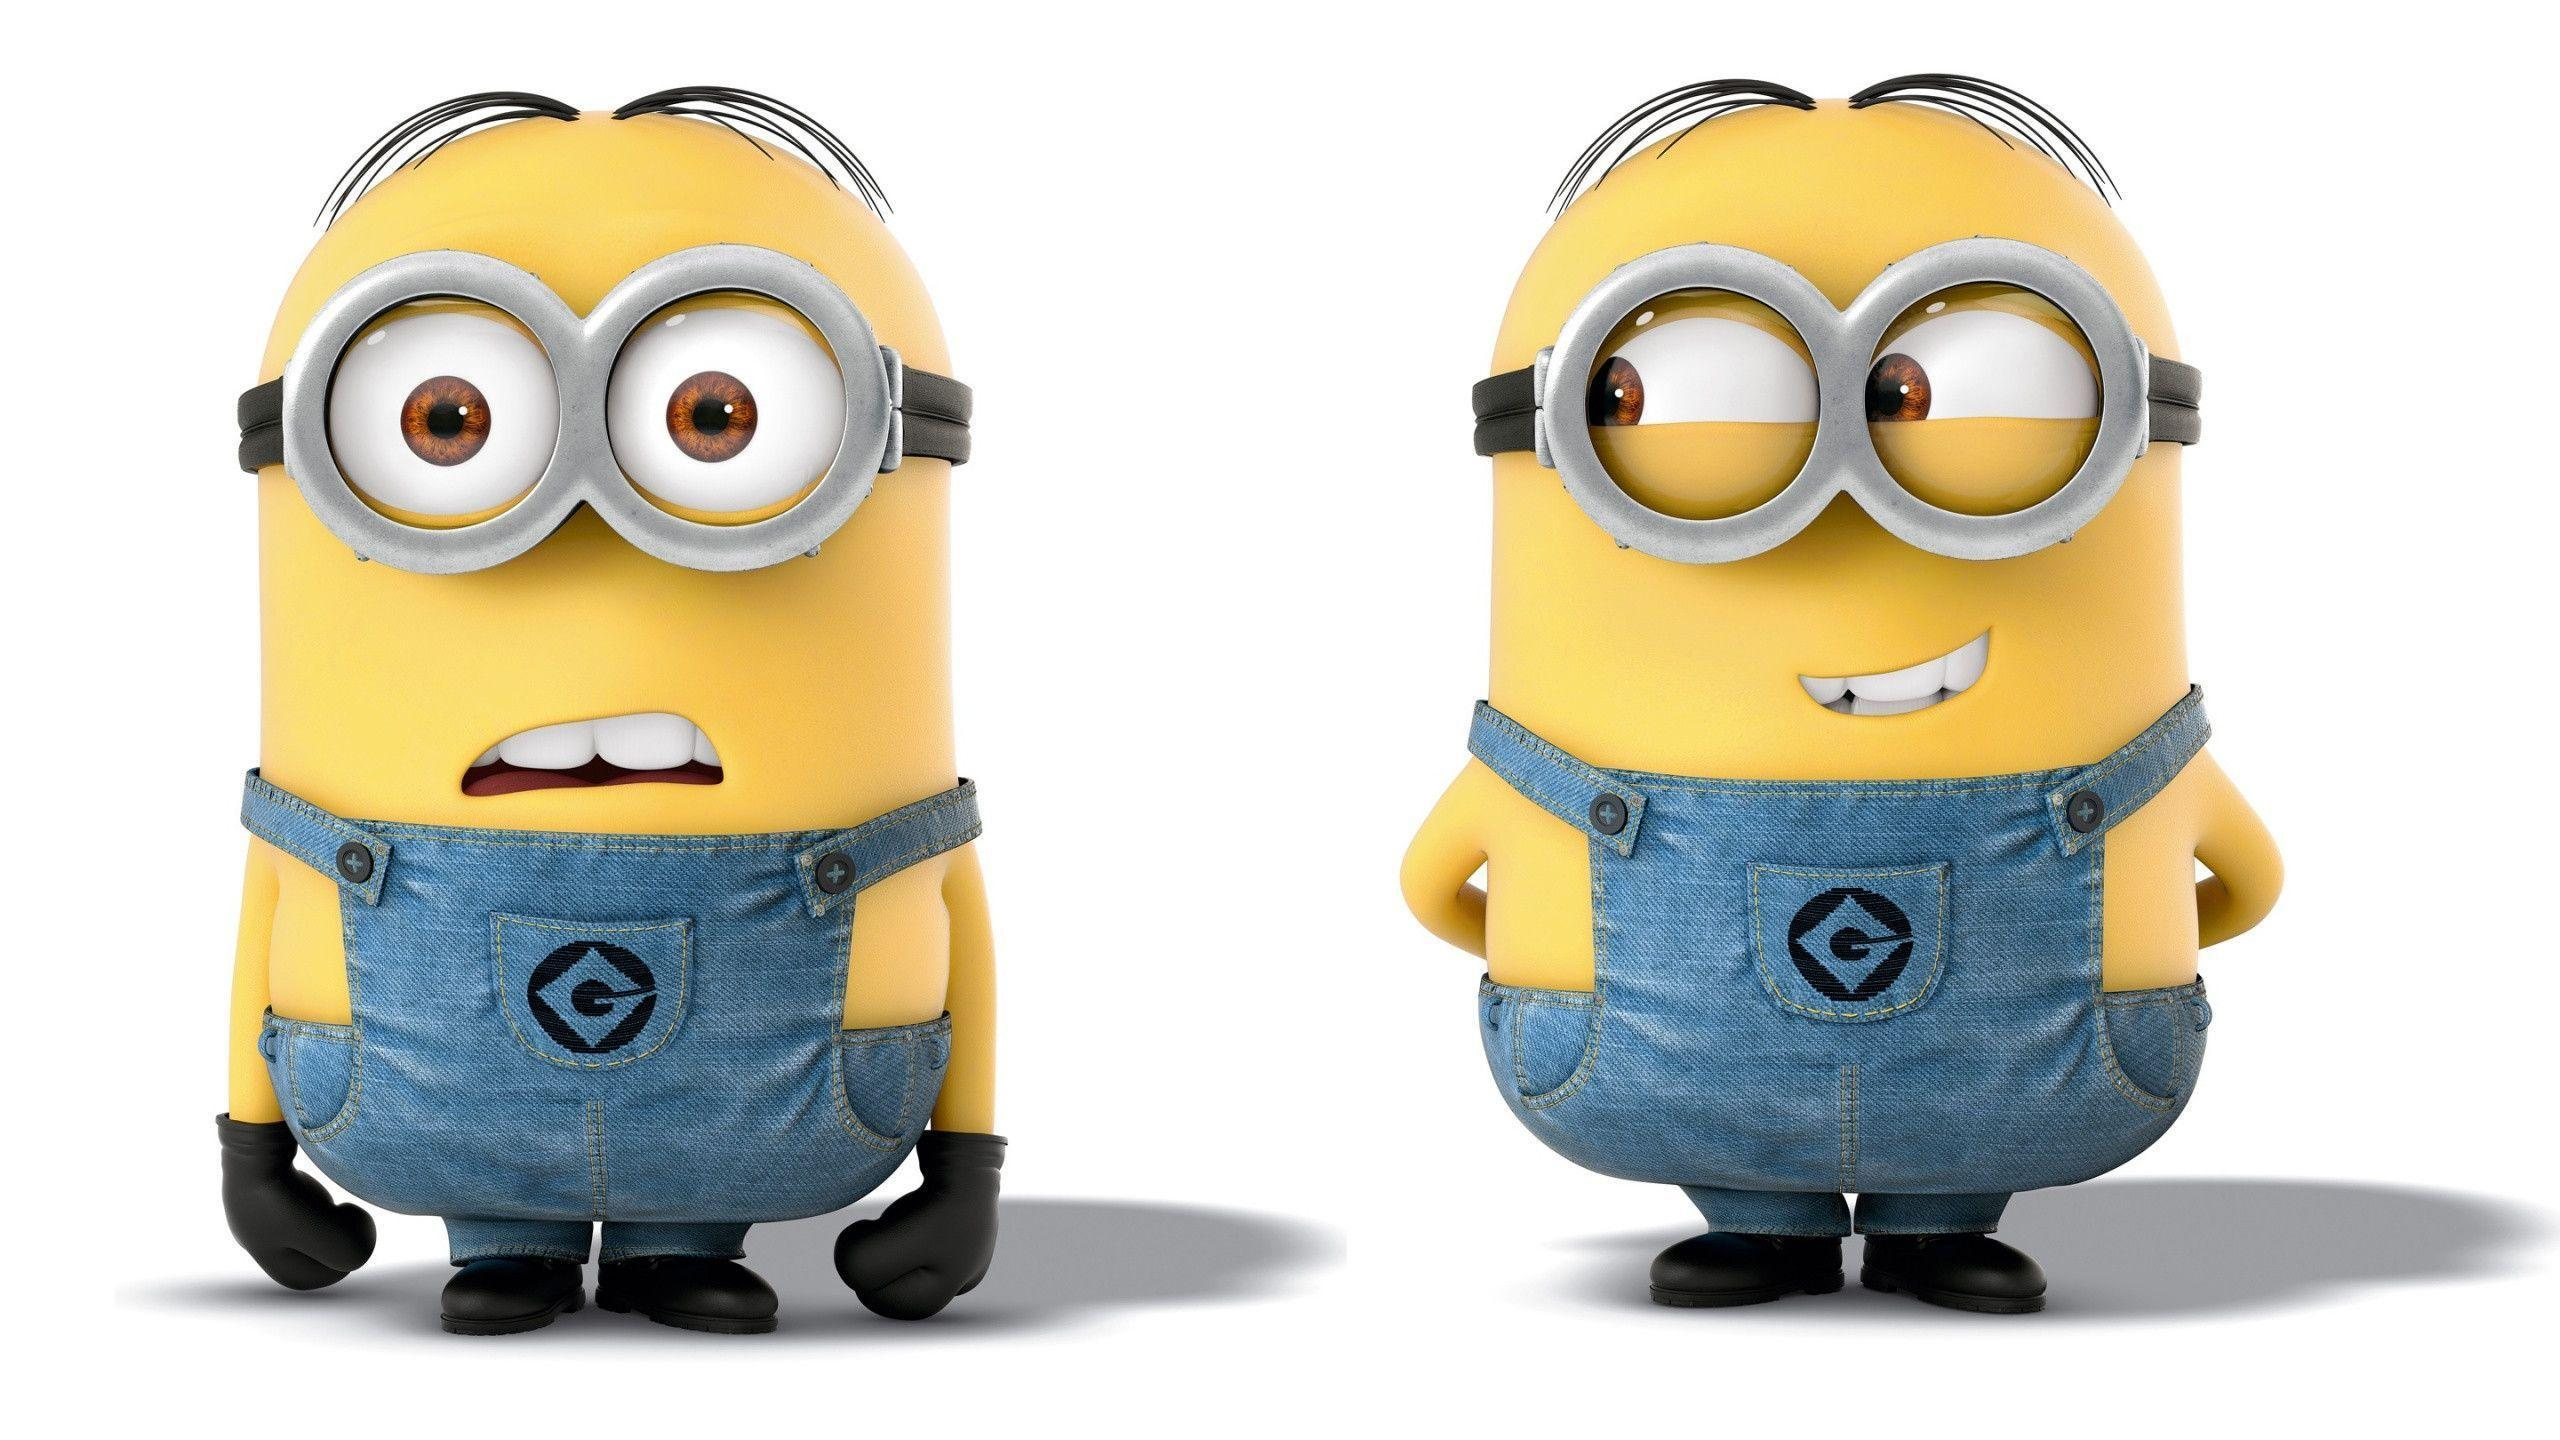 Despicable Me Wallpaper 1920X1080 wallpaper - 1236153